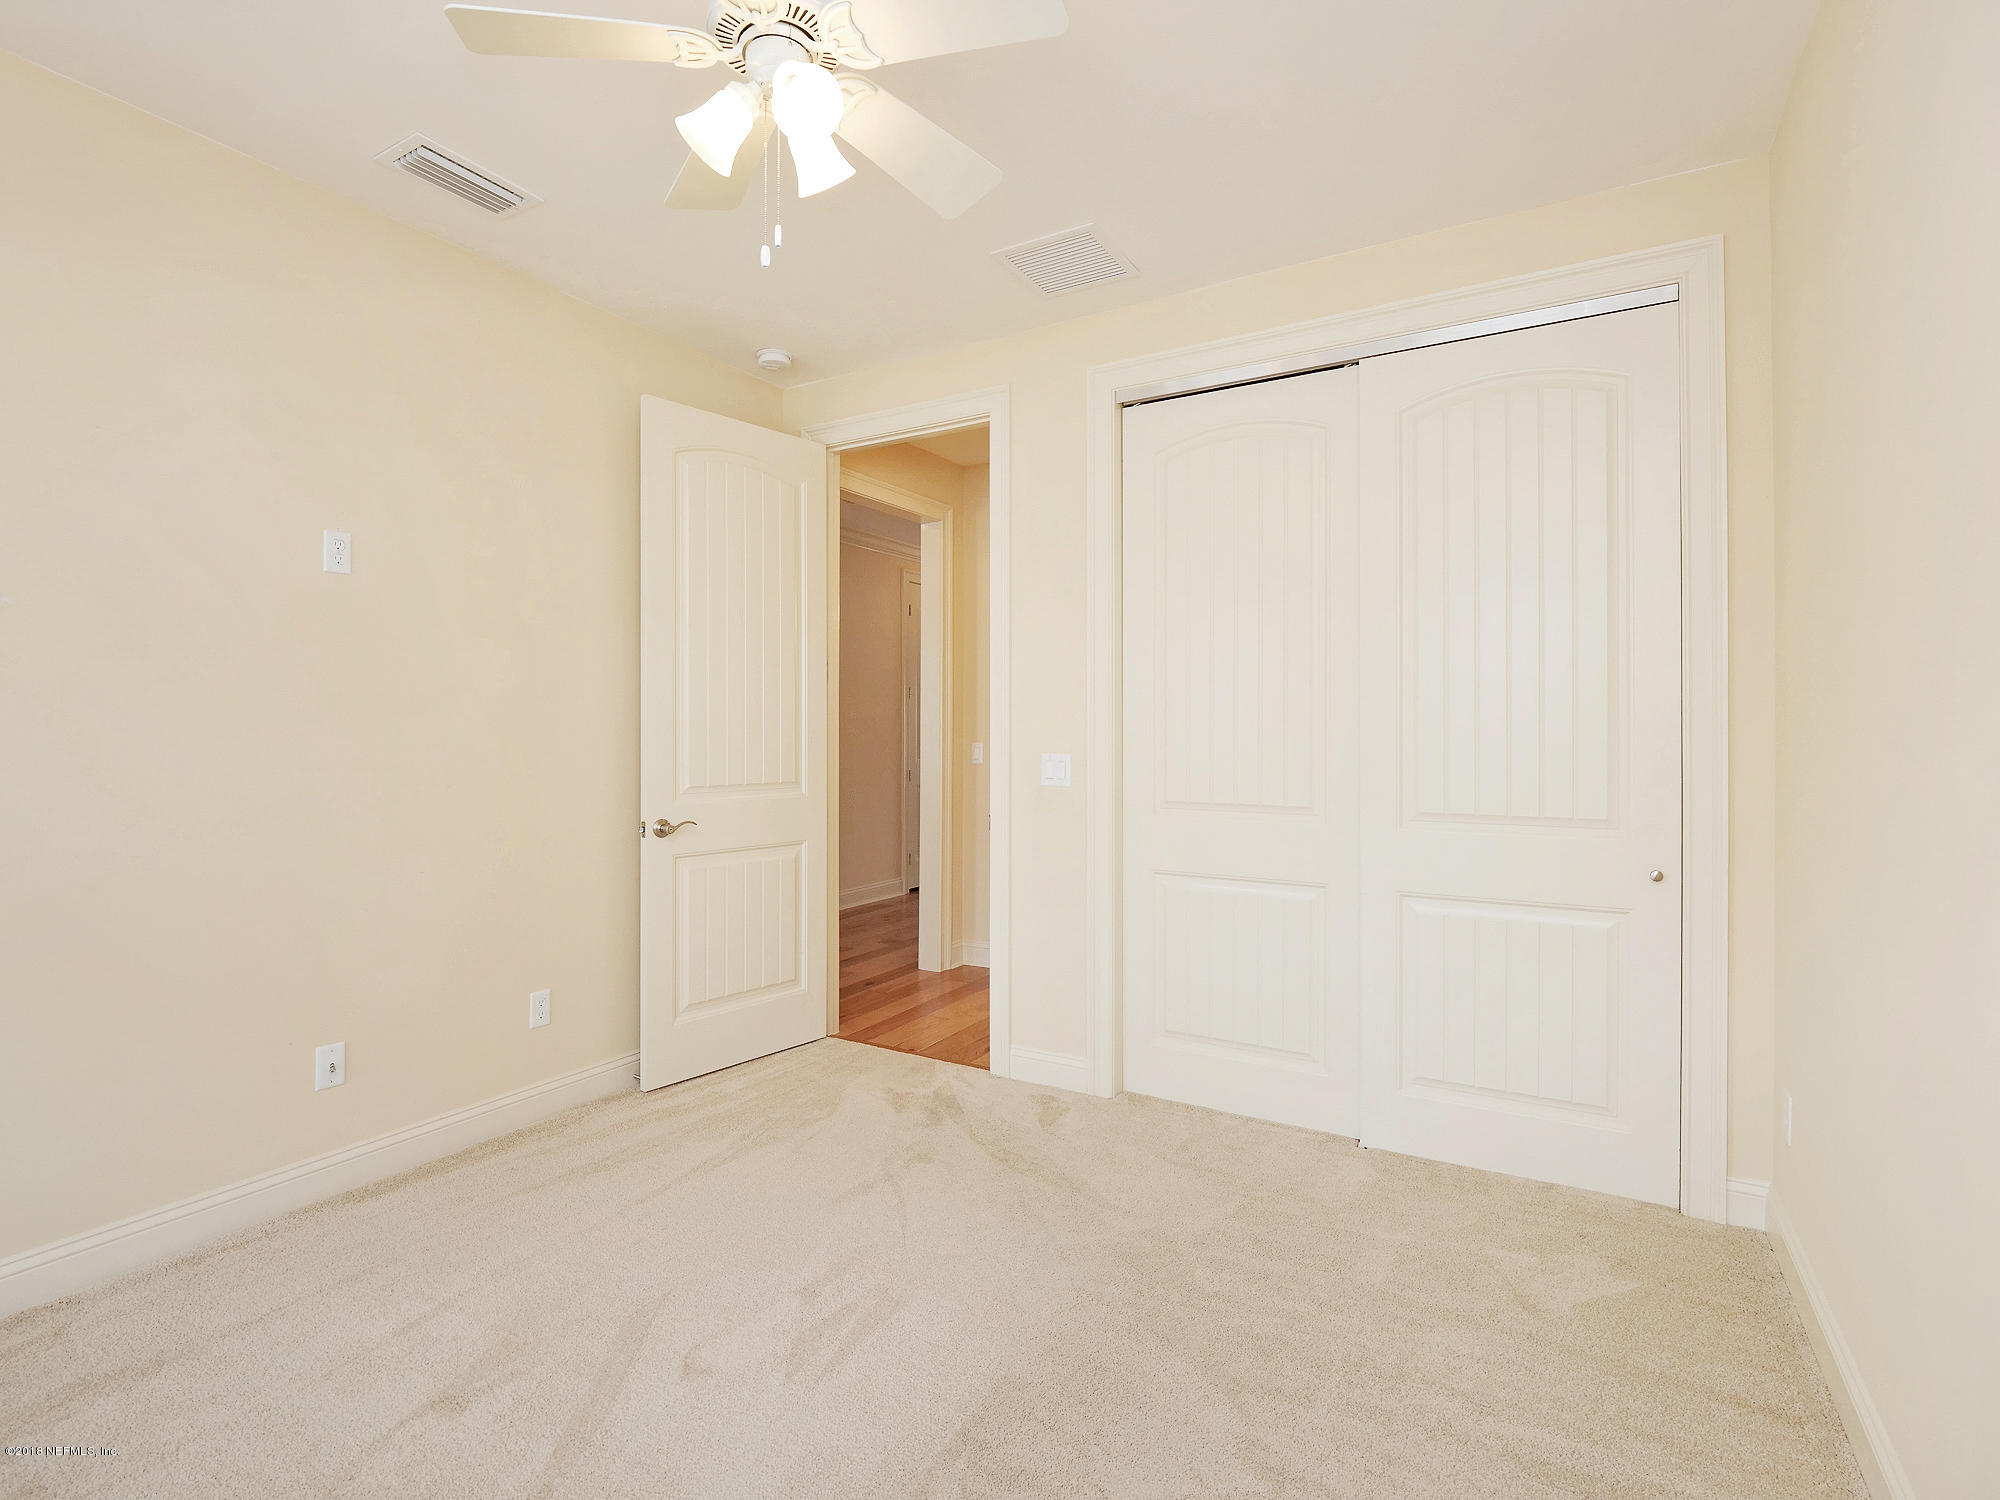 225 39TH, JACKSONVILLE BEACH, FLORIDA 32250, 4 Bedrooms Bedrooms, ,3 BathroomsBathrooms,Residential - single family,For sale,39TH,952622